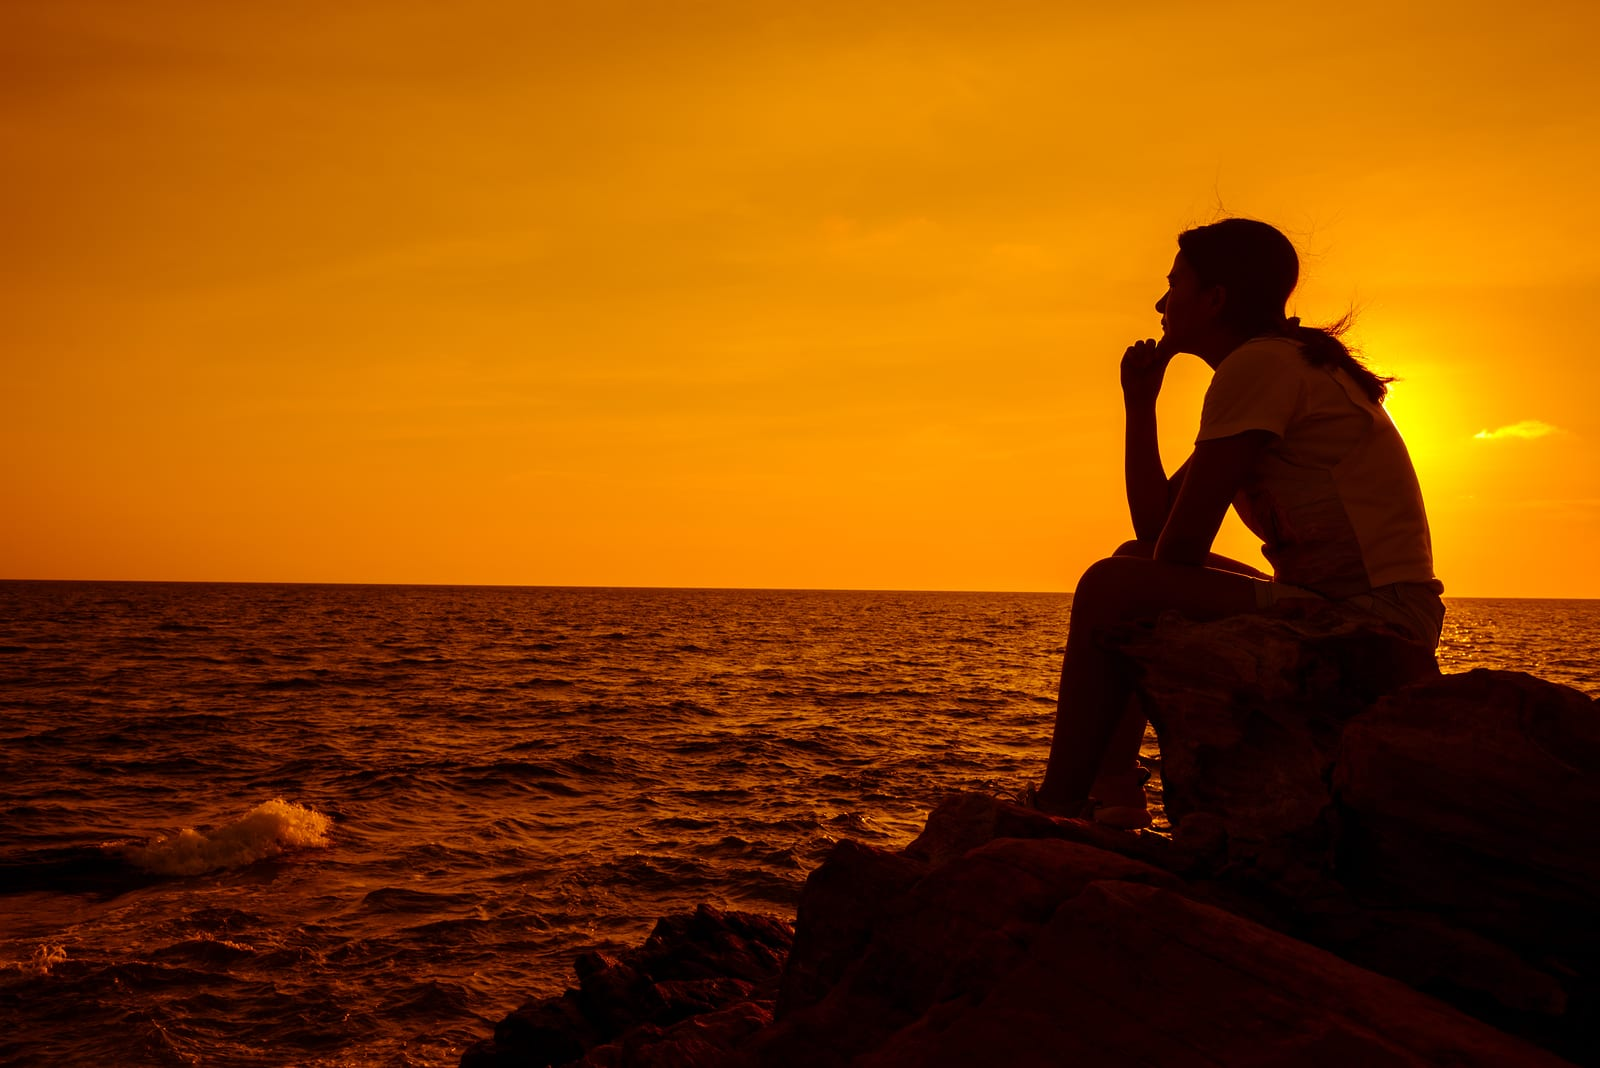 Silhouette women sitting alone on the rock. Mental health, PTSD and suicide prevention.